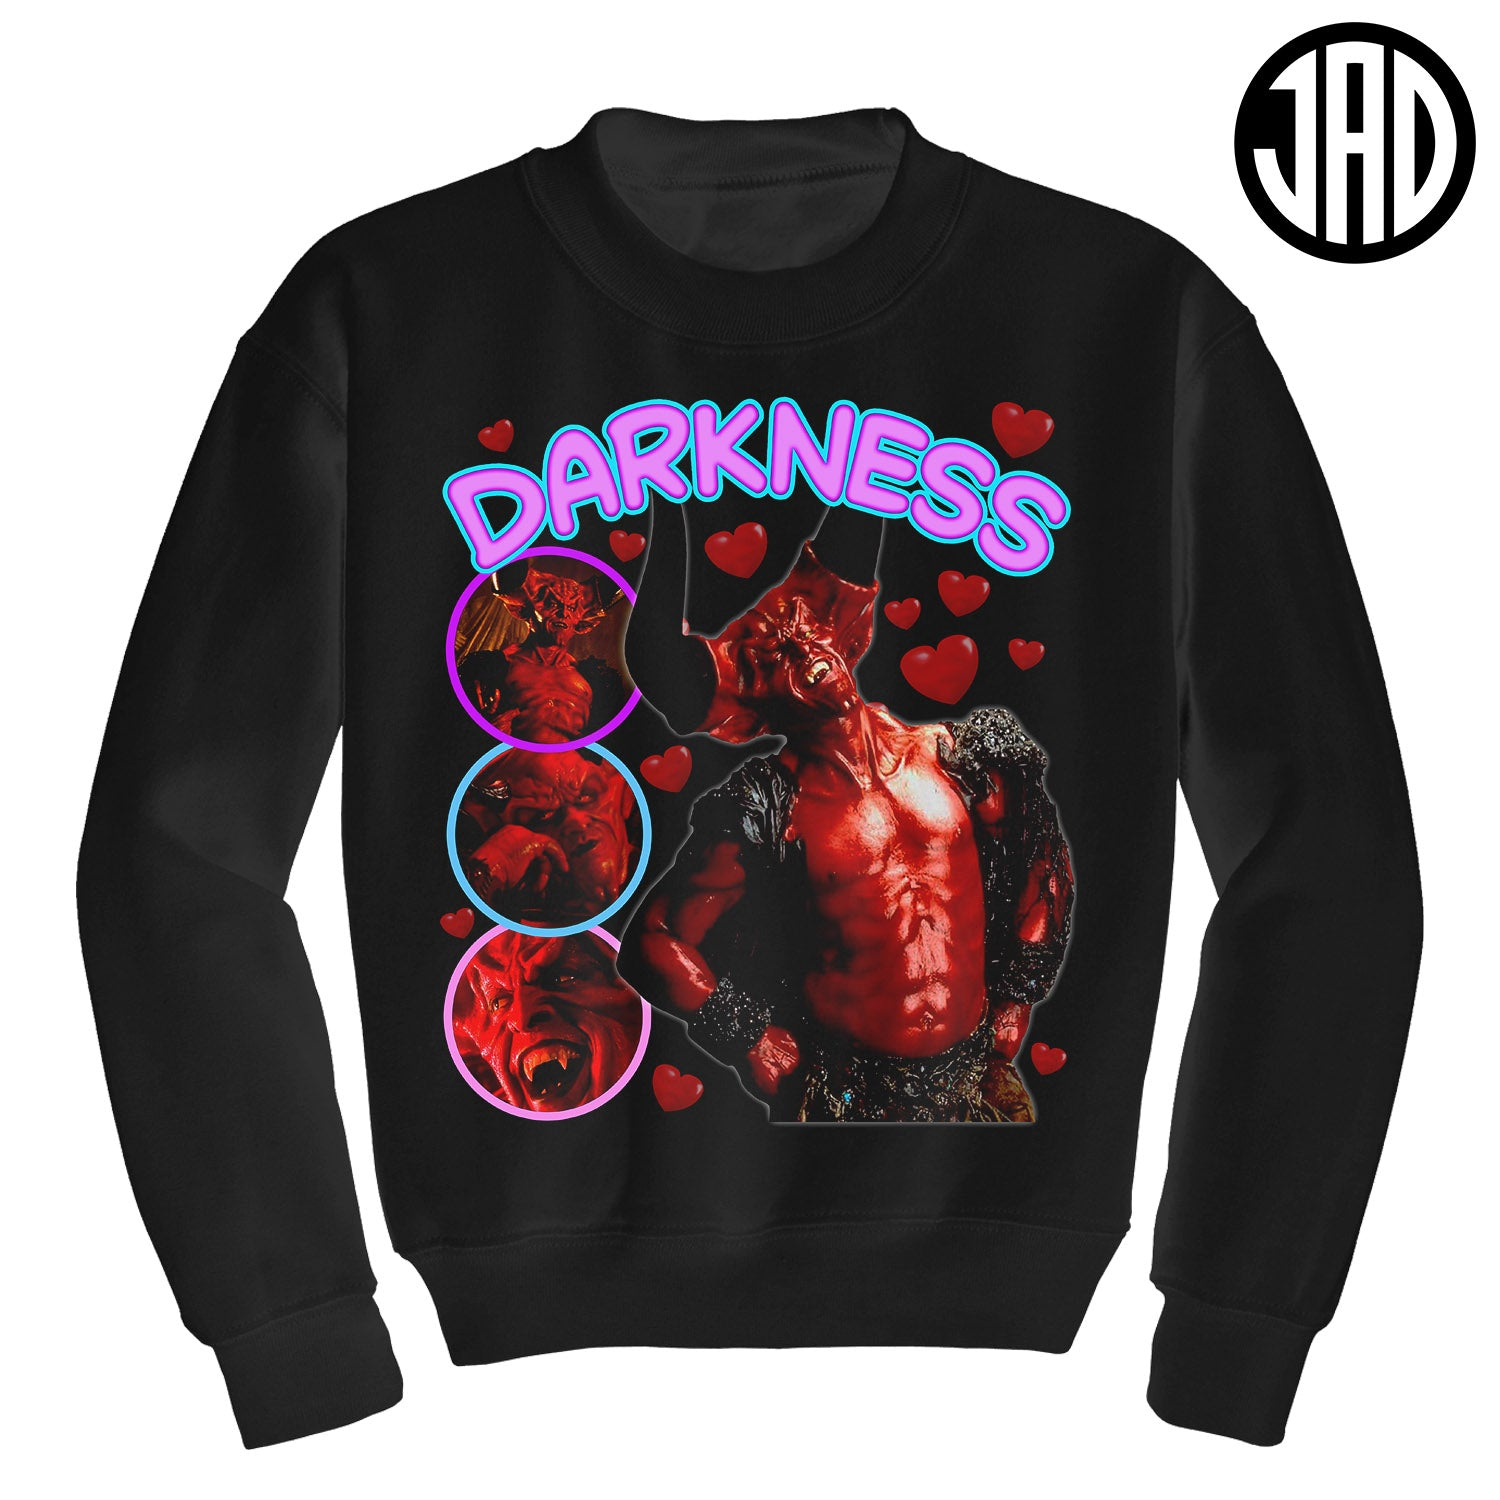 Darkness - Crewneck Sweater